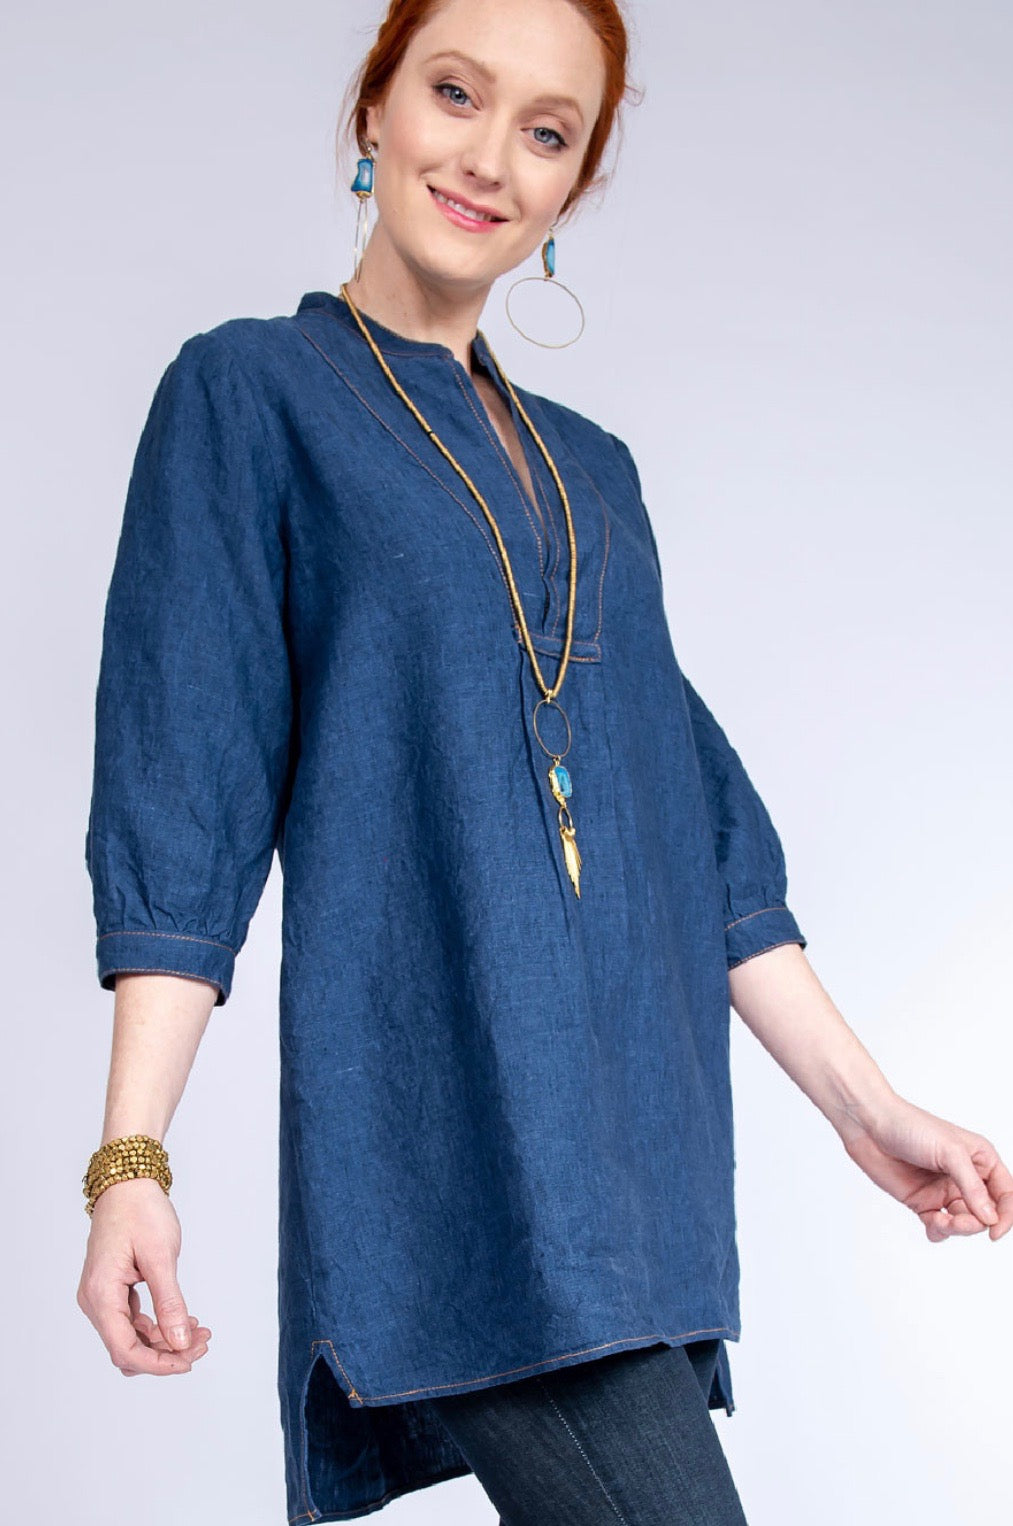 LinenDark Indigo Dress/Tunic by Ivy Jane/Uncle Frank